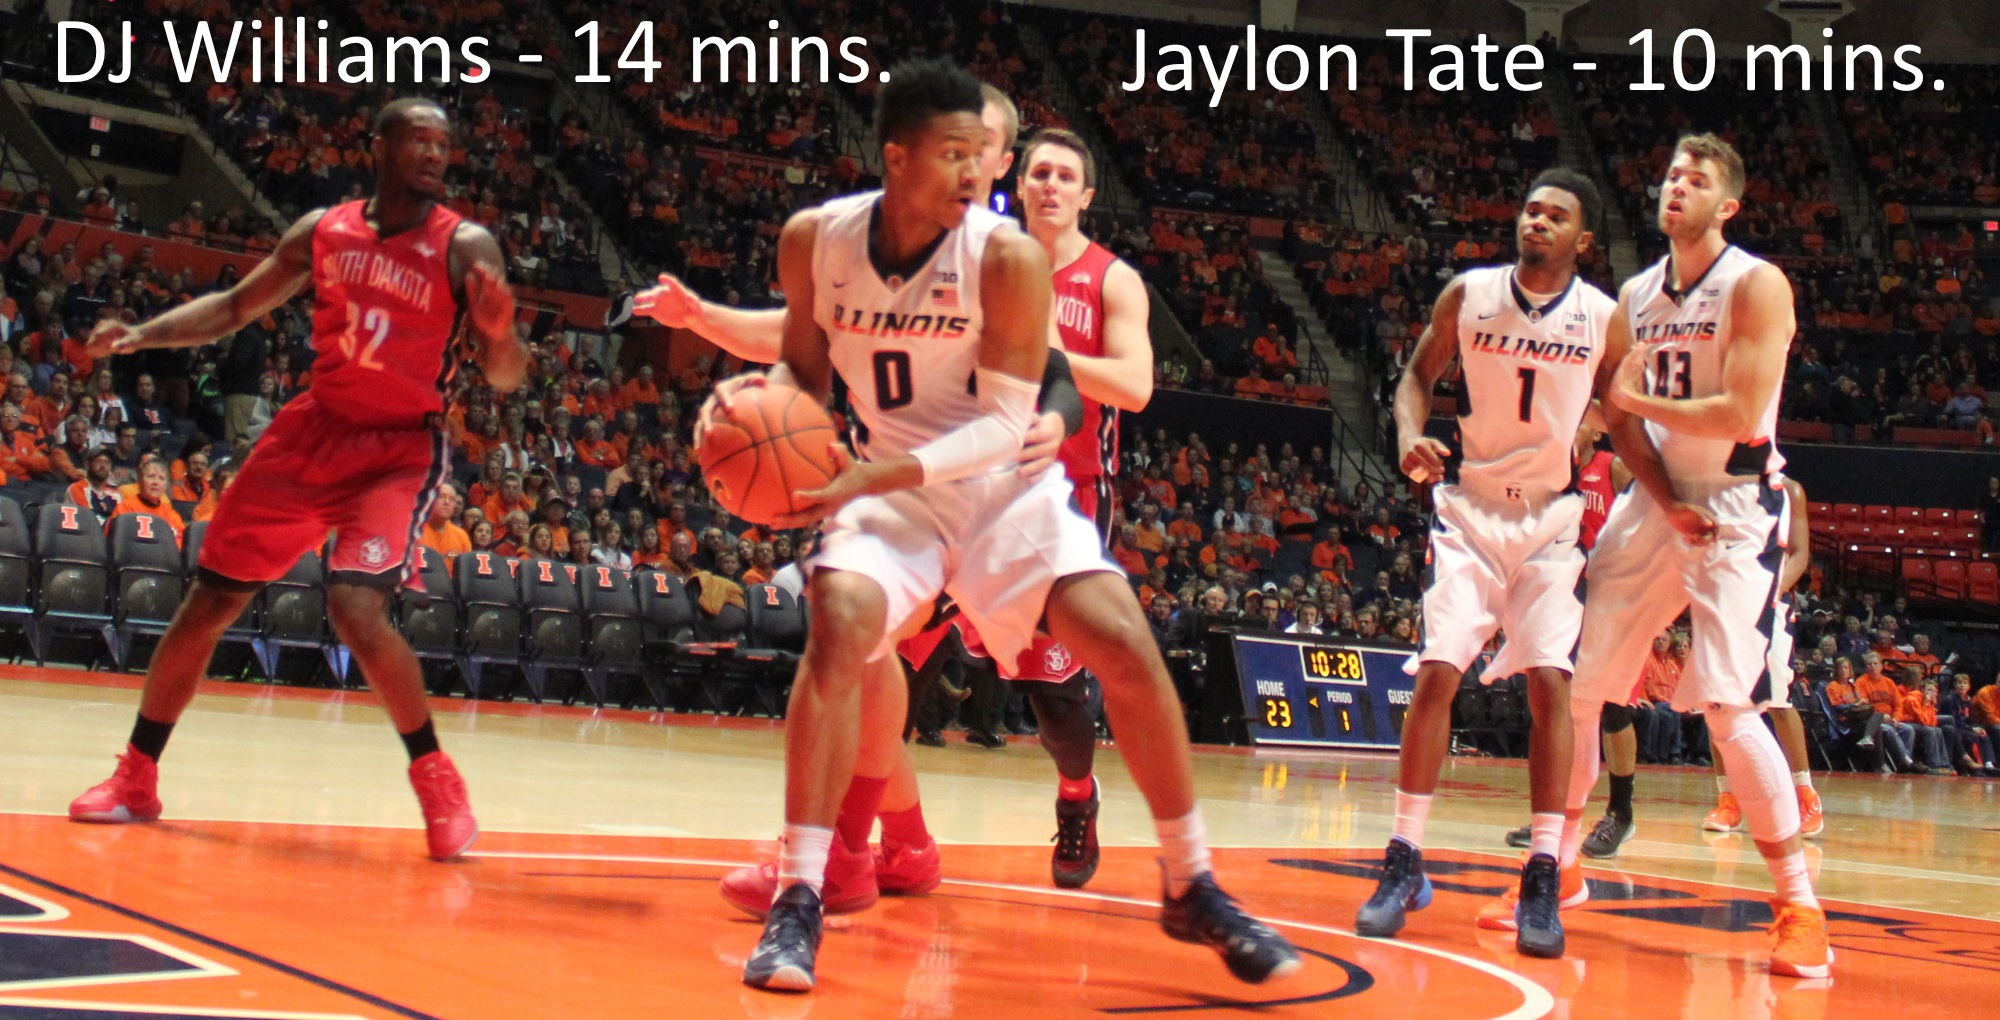 DJ Williams 14 mins, Jaylon Tate 10 mins